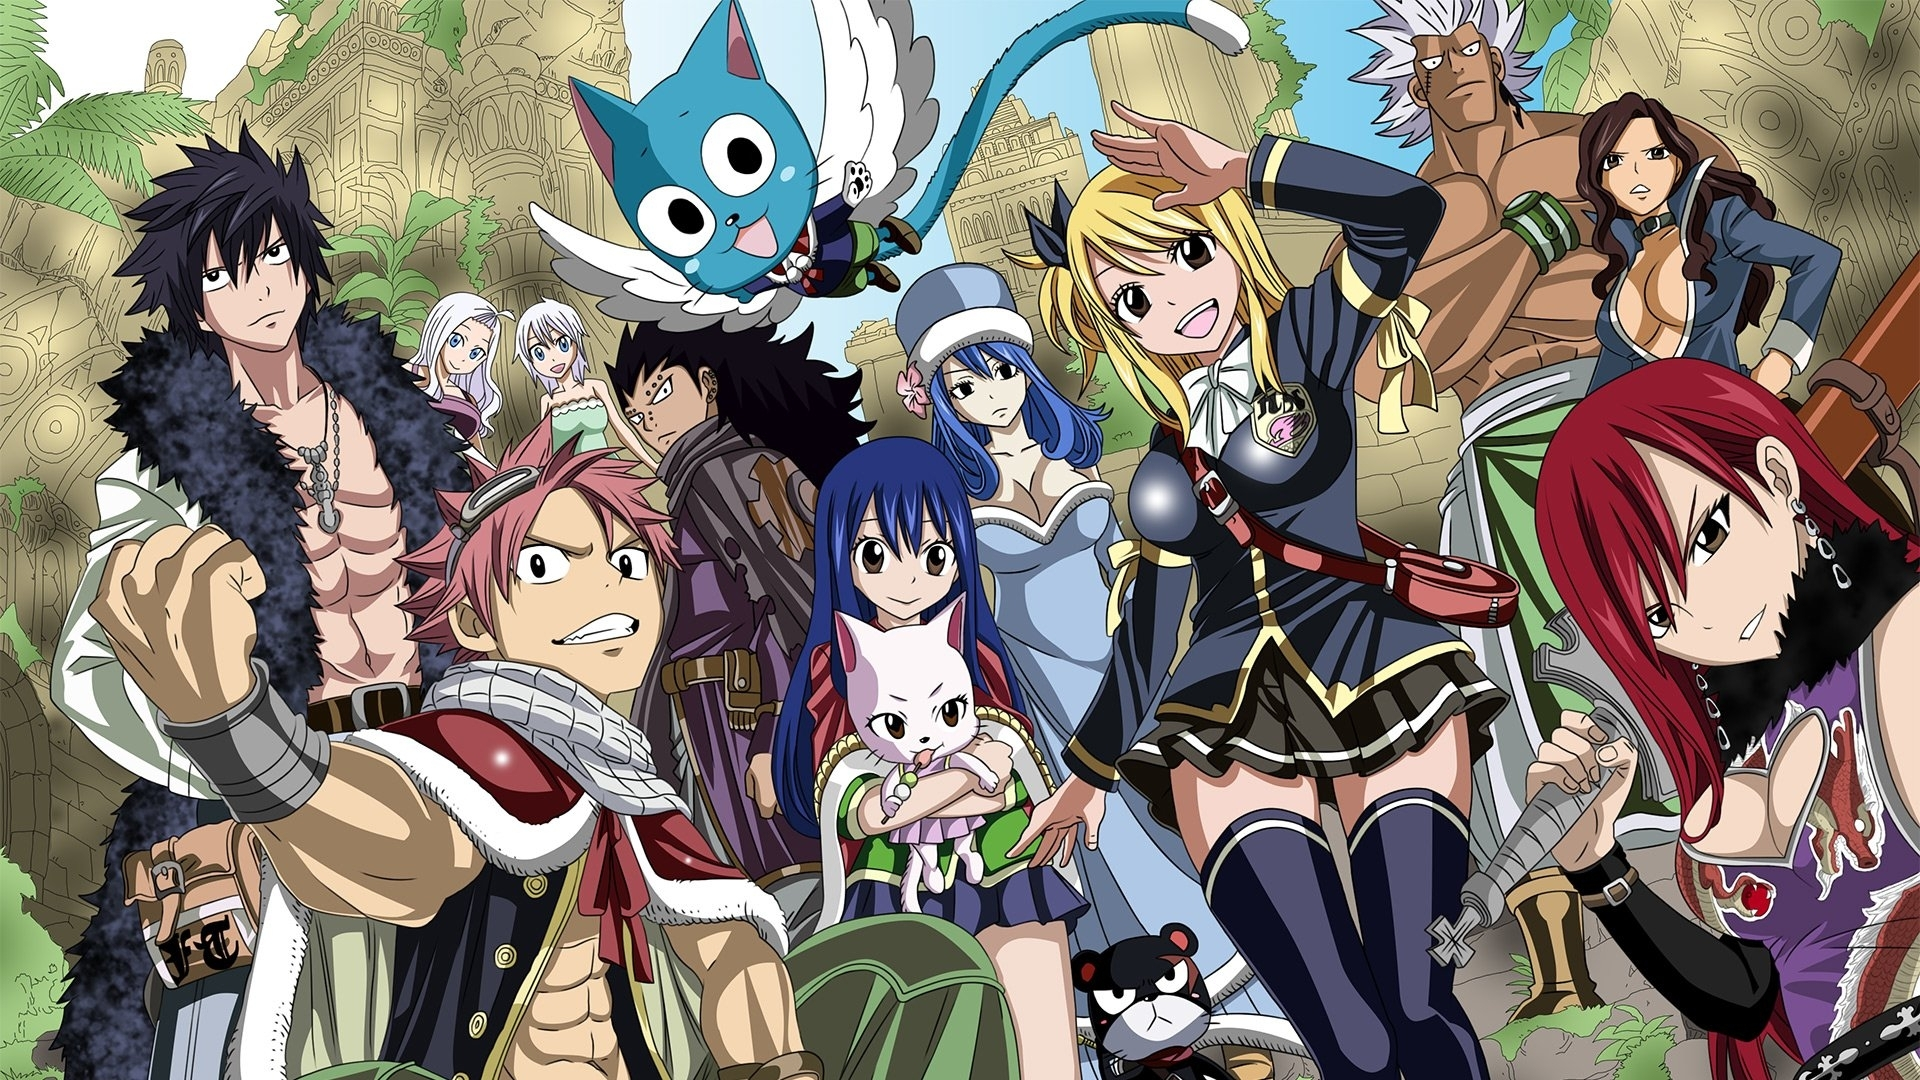 fairy tail full hd wallpaper and background image | 1920x1080 | id